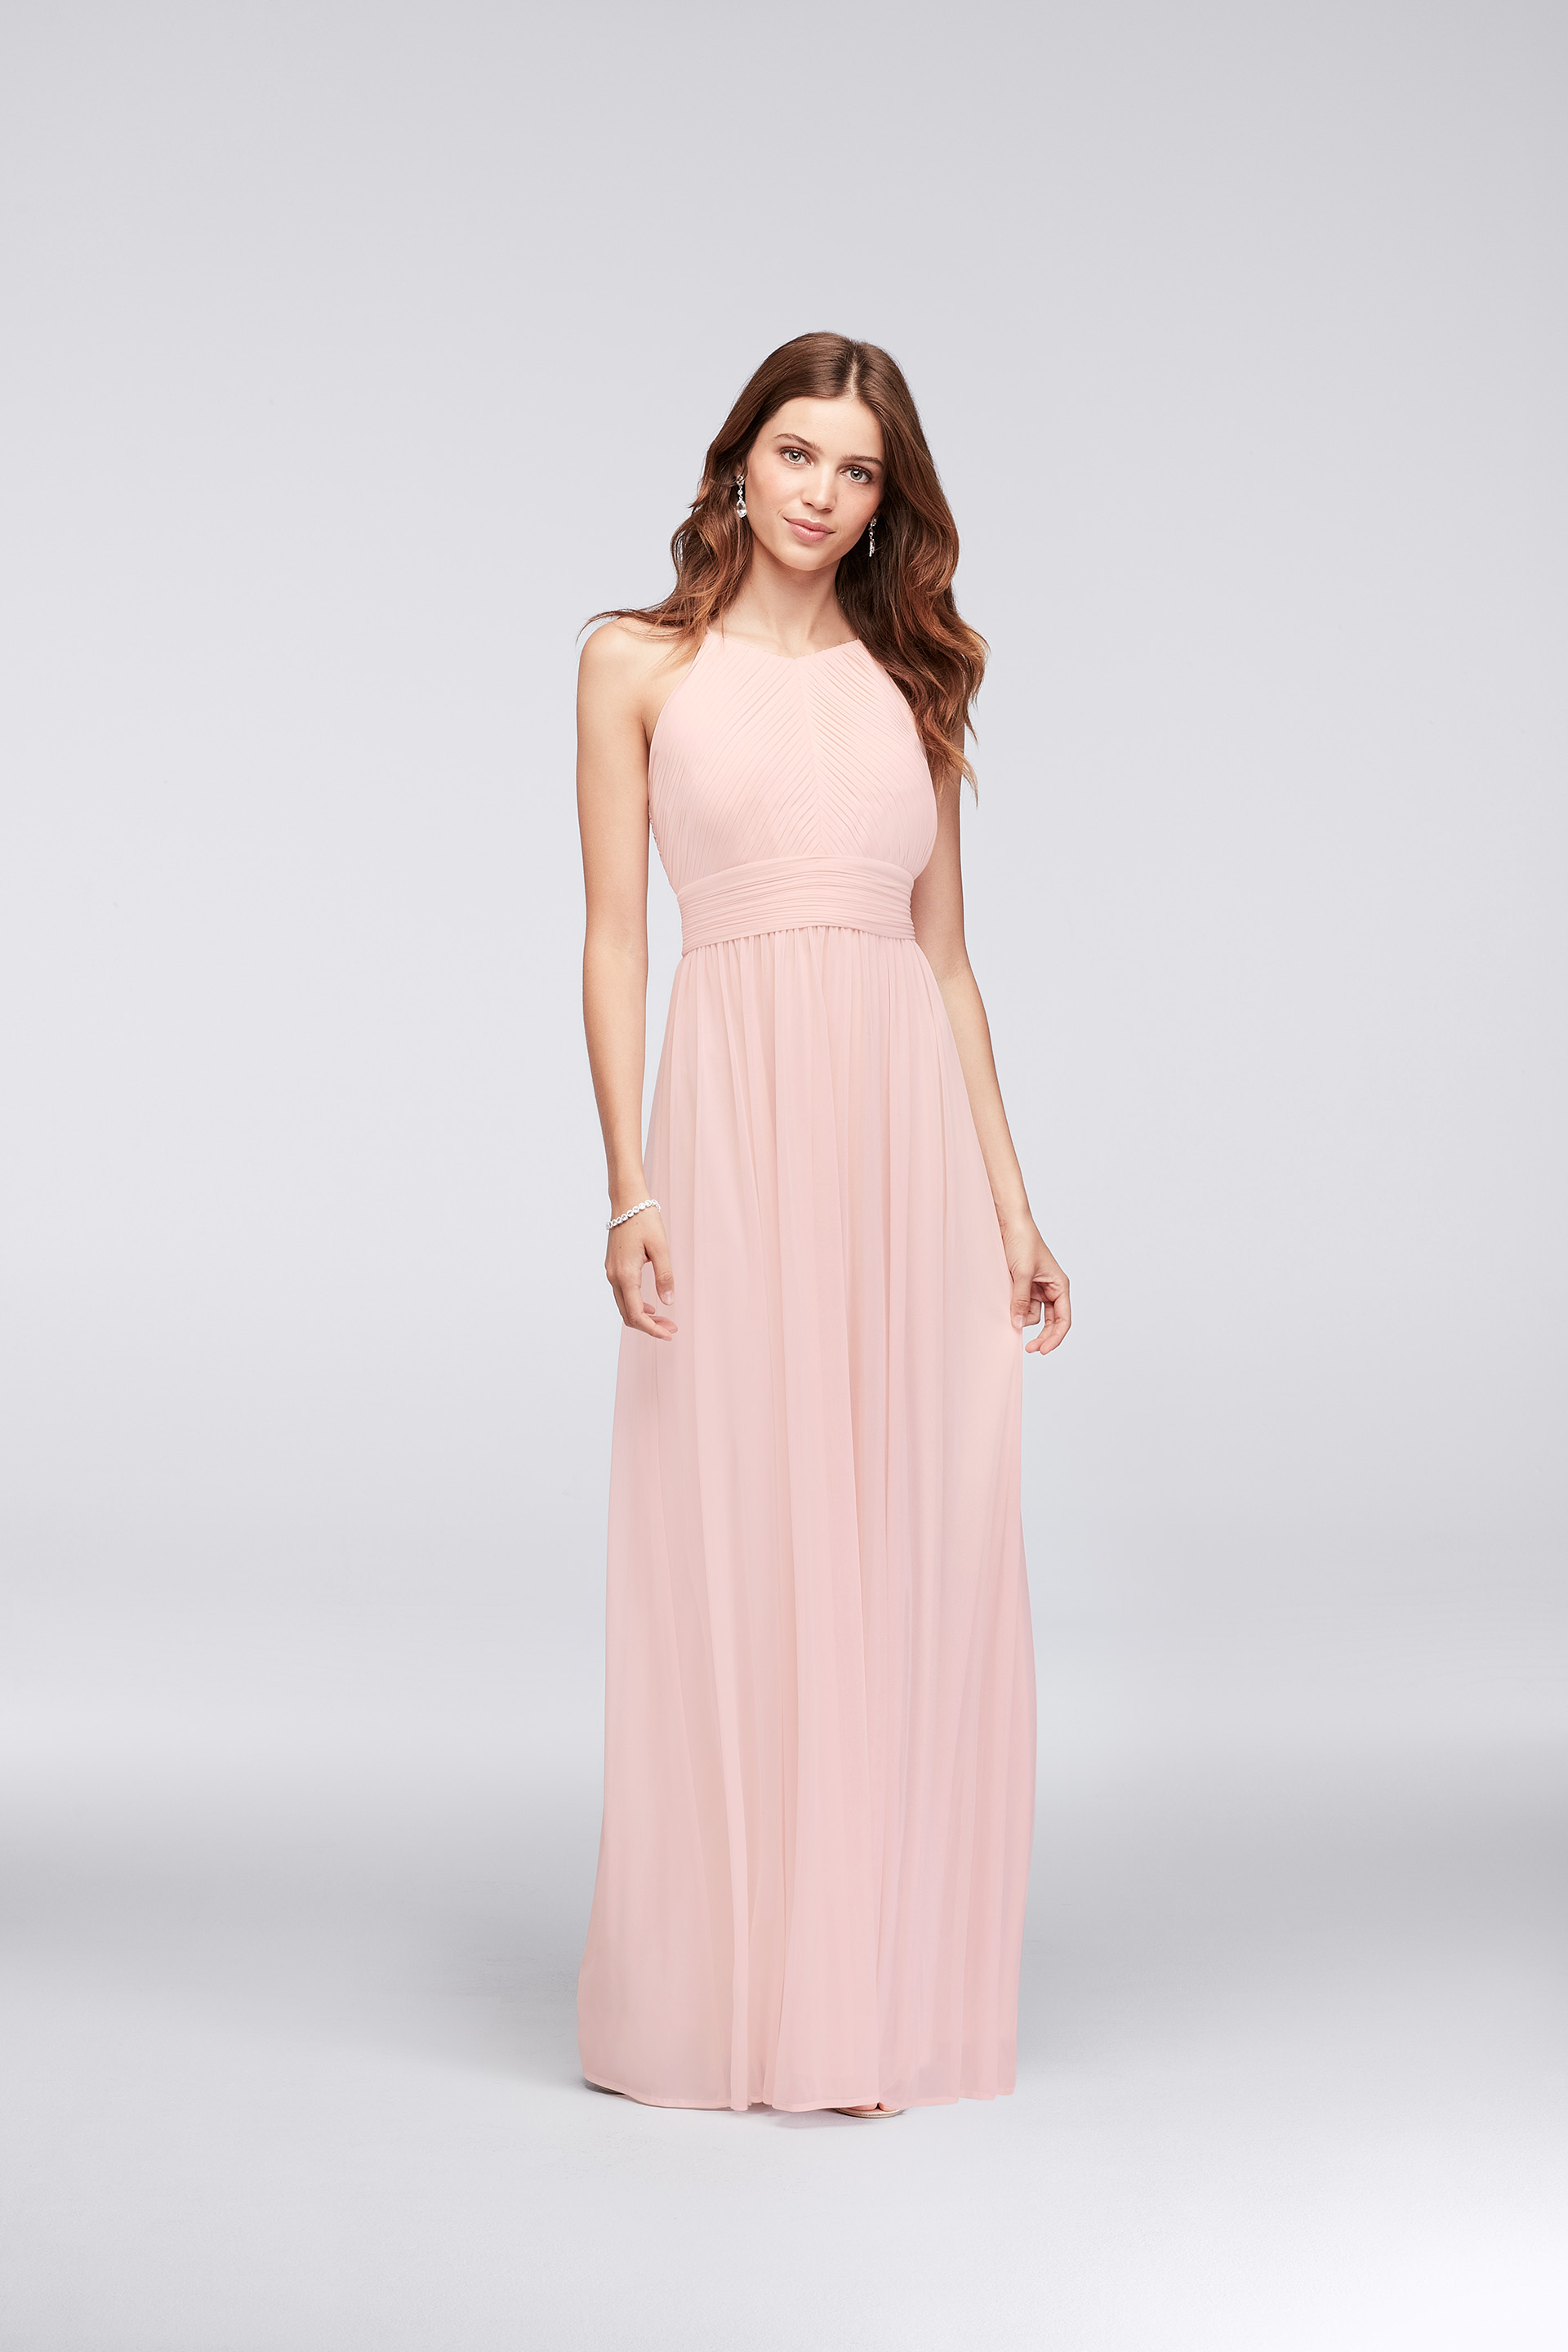 9a4b6dd09a9 Reverie for David s Bridal bridesmaid dresses. (Credit  David s Bridal)